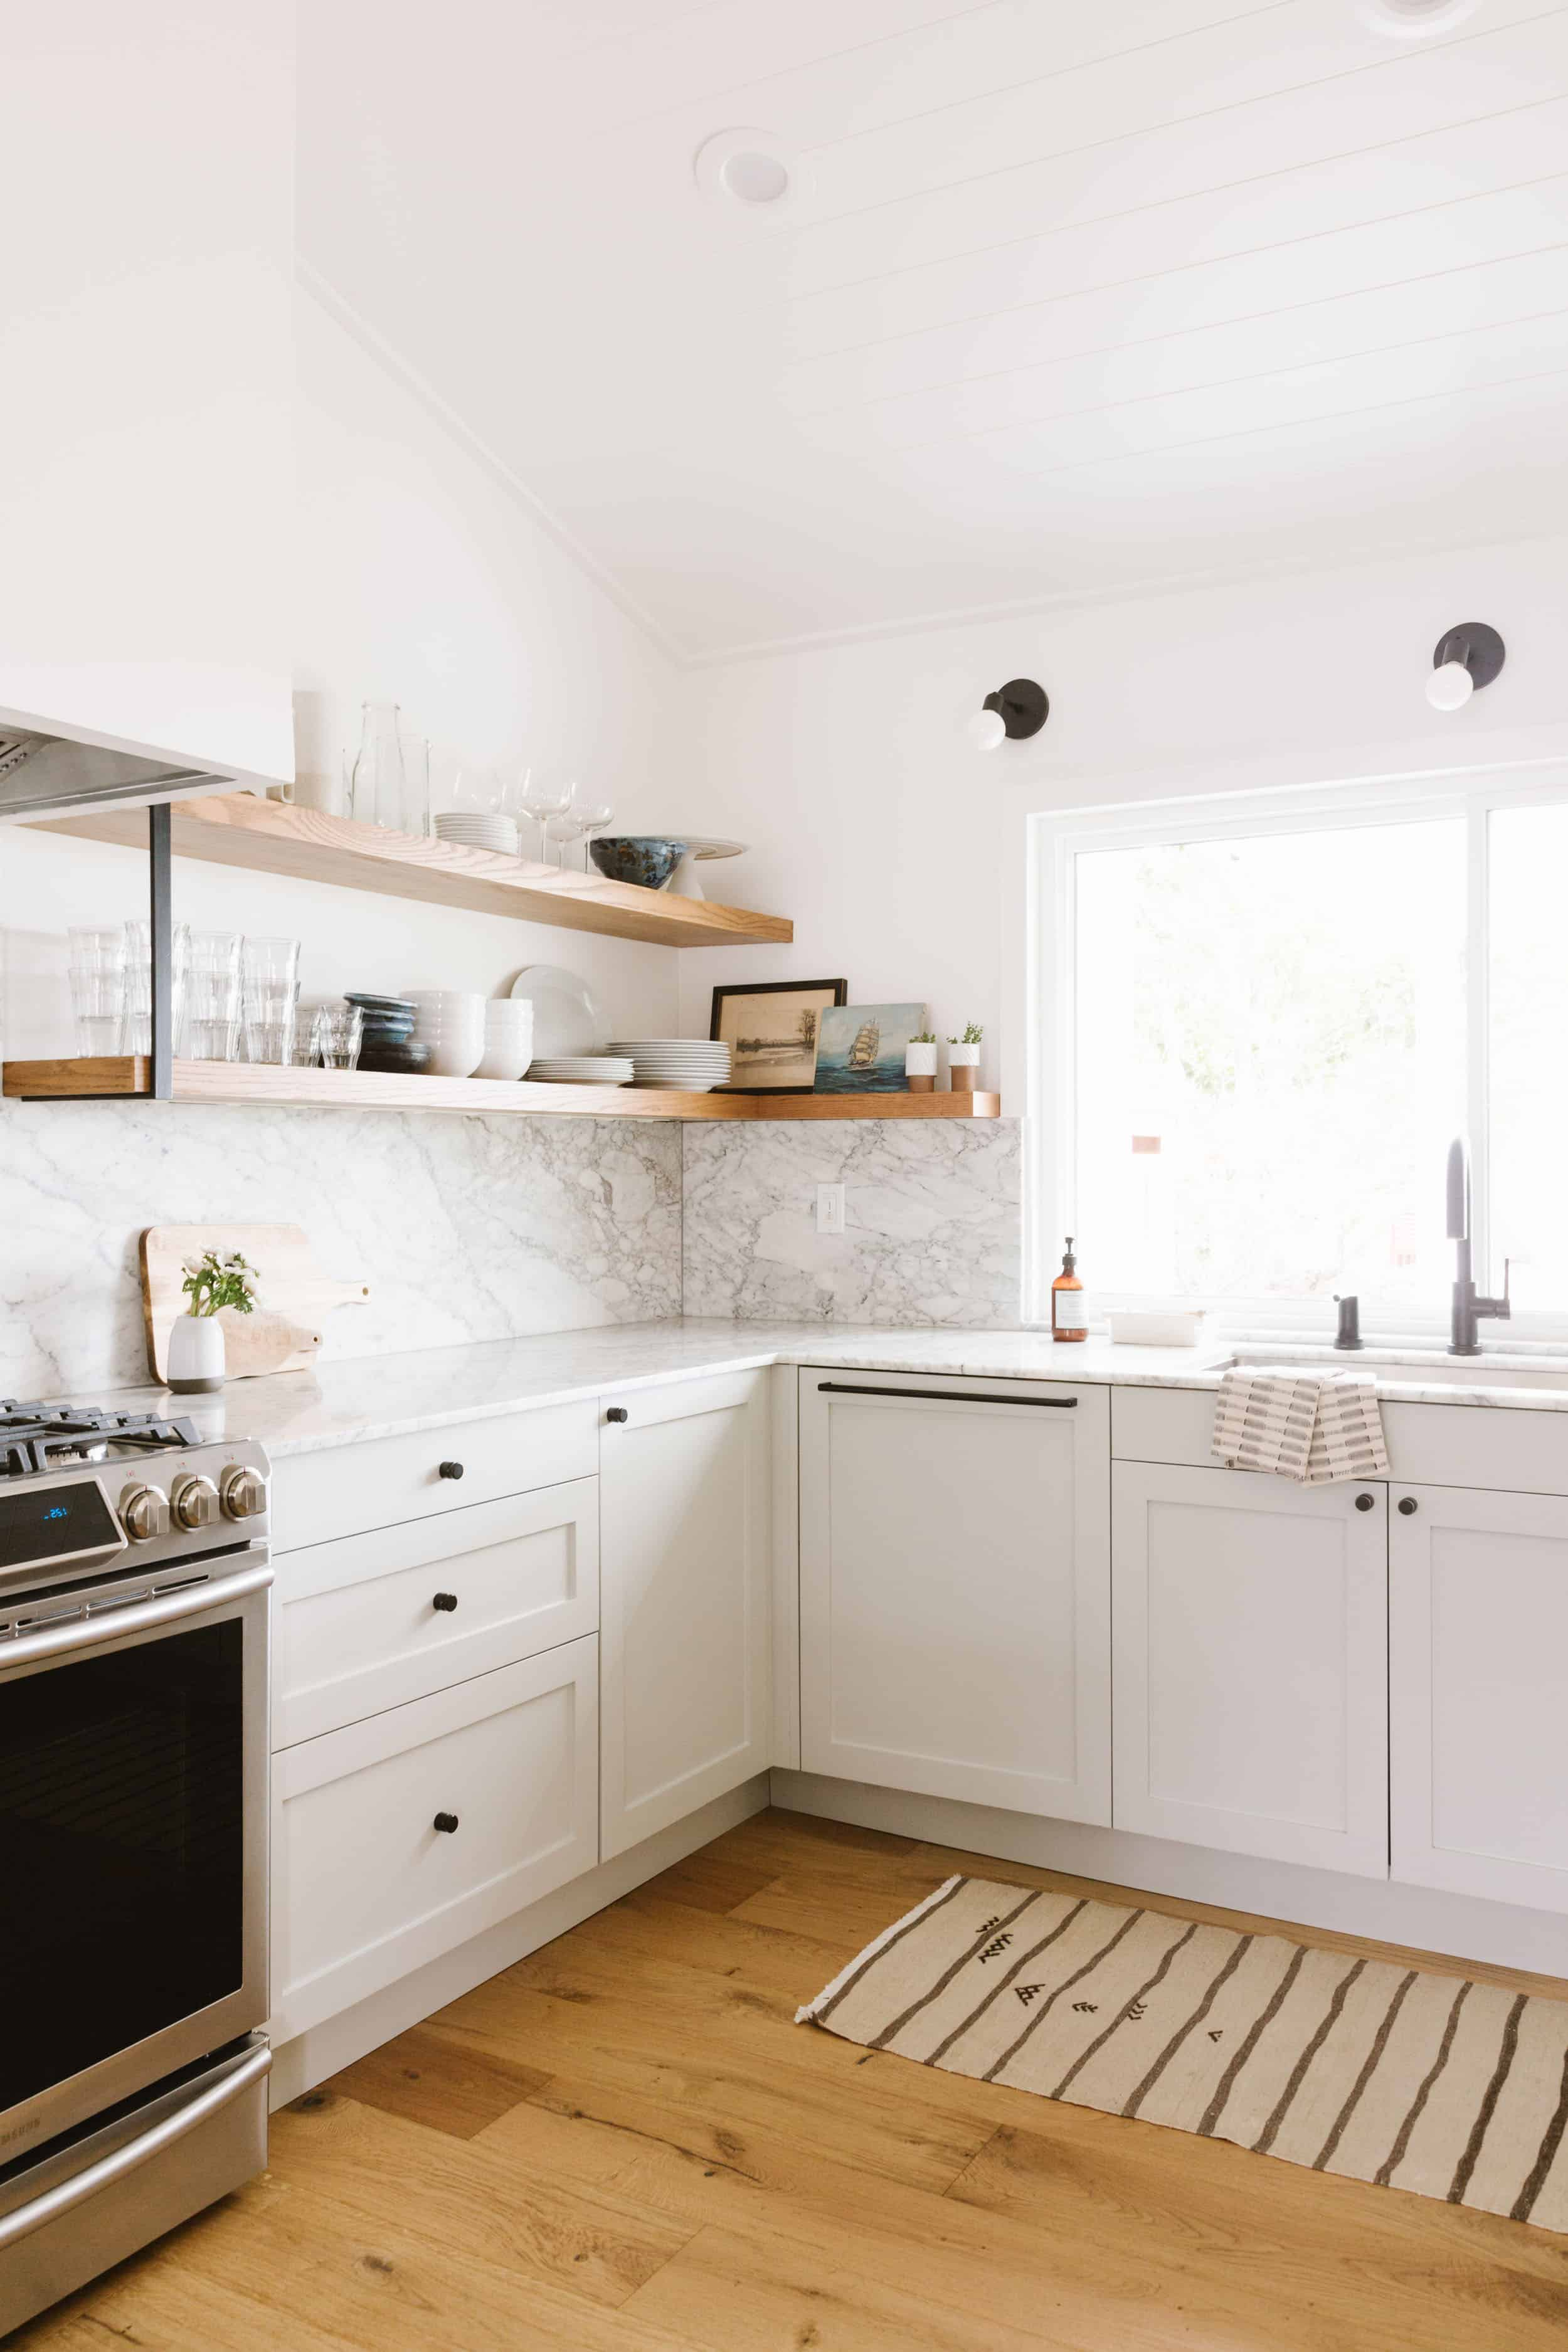 Samantha Gluck Emily Henderson Kitchen Marble Backsplash White Cabinets Scandi